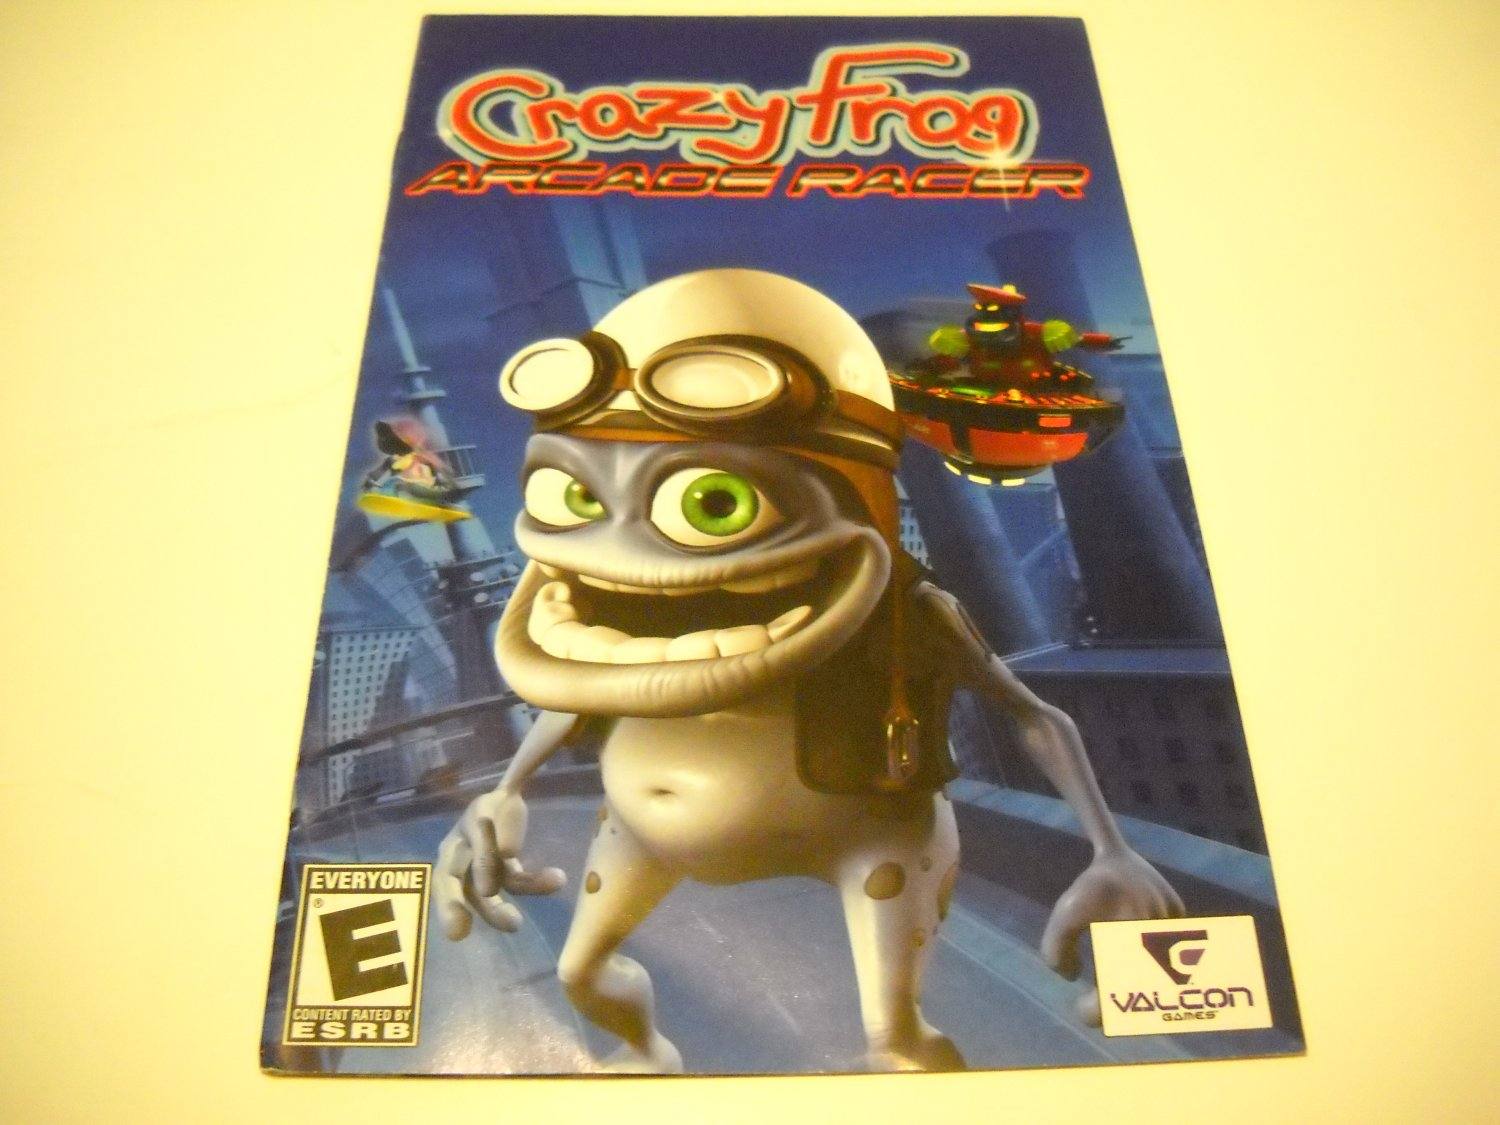 Manual ONLY ~  for Crazy Frog Arcade Racer   Ps2